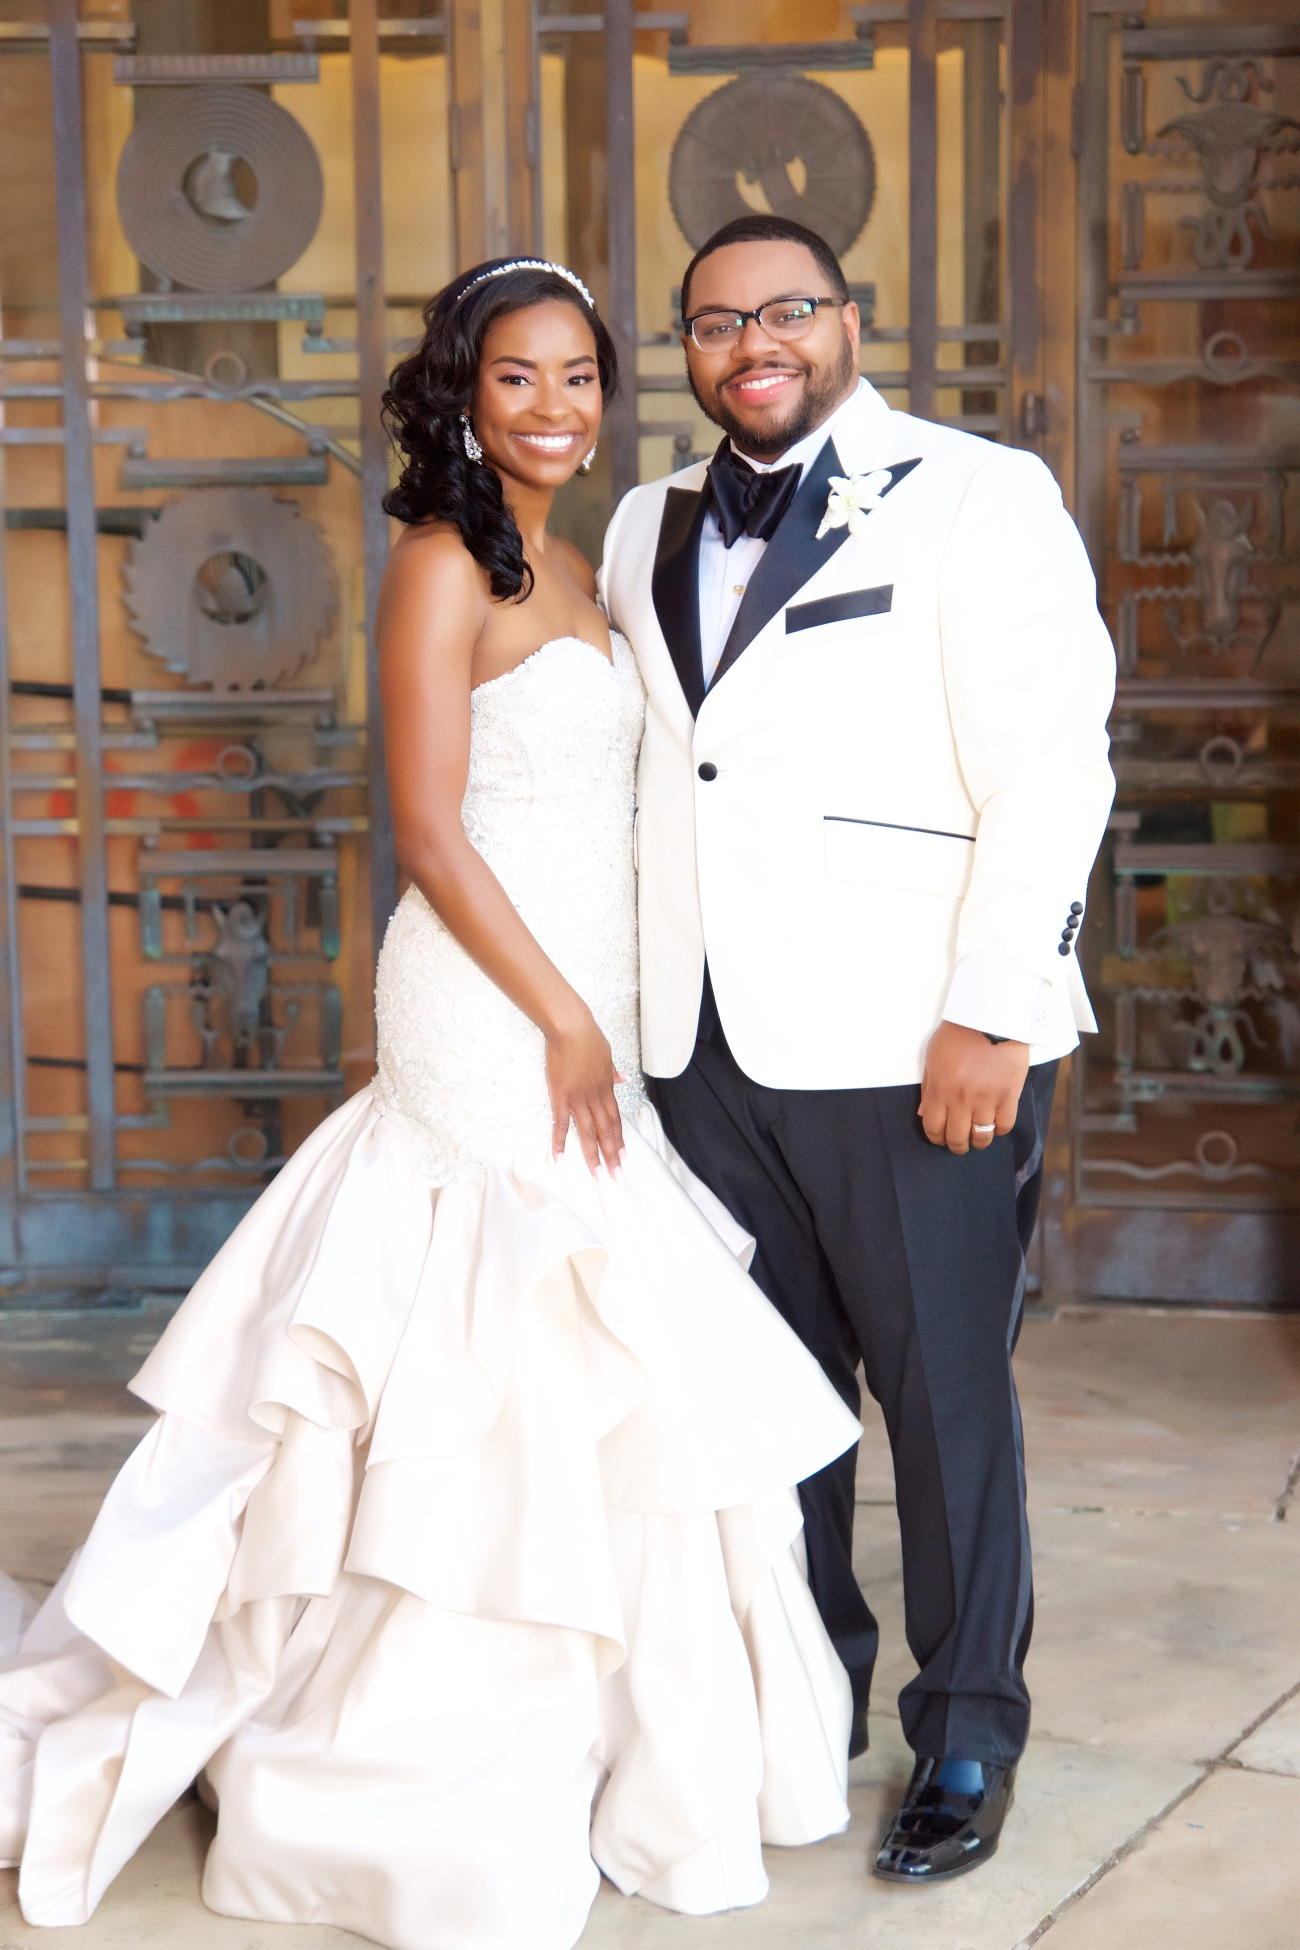 Cole & Lois-Marie Wedding - DALLAS HALL OF STATE TEXAS